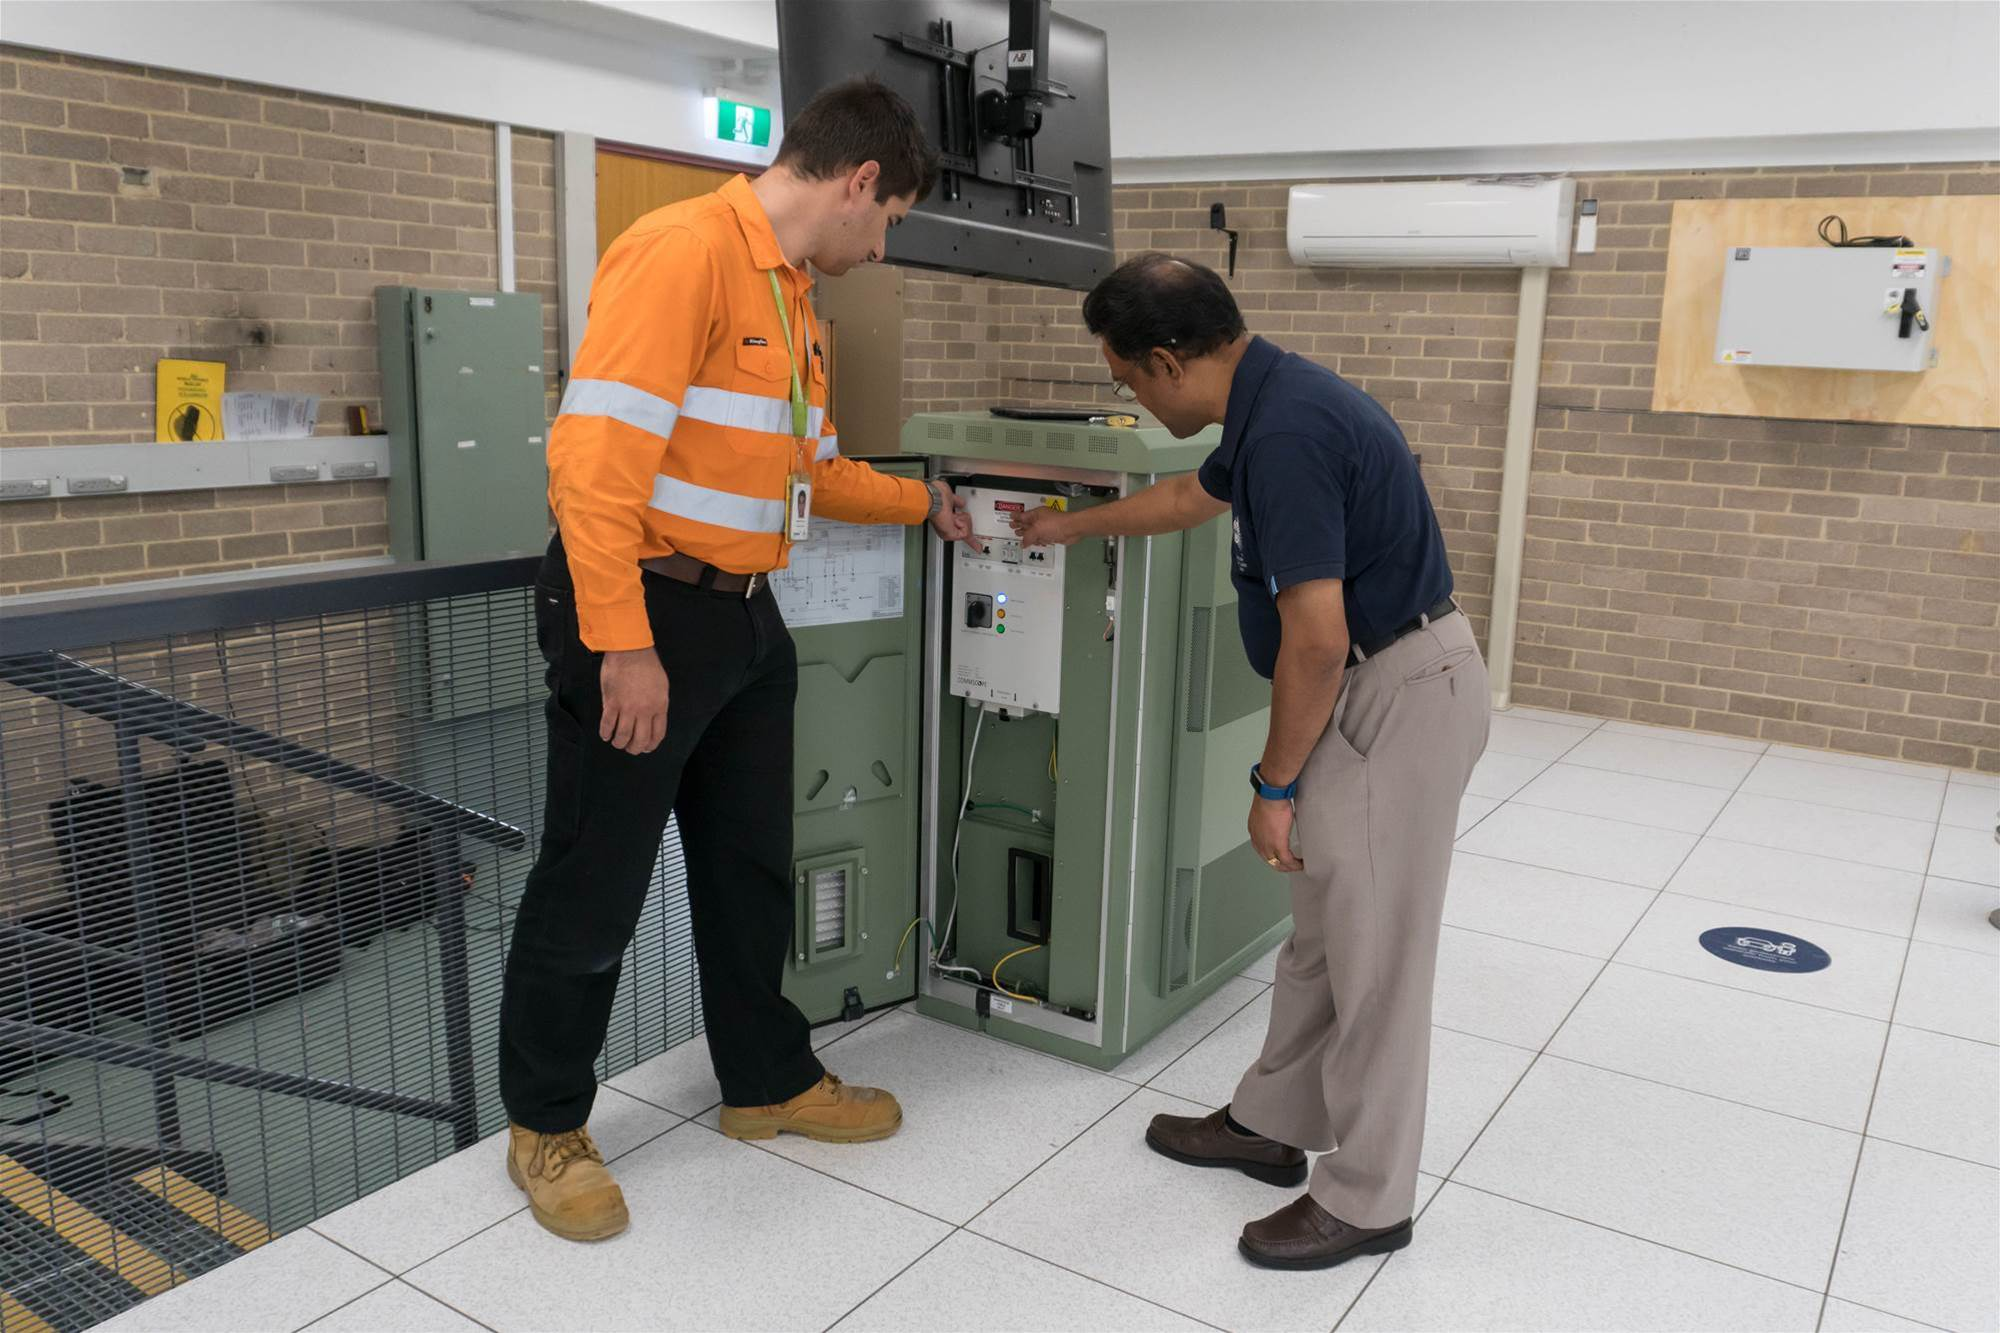 NBN Co to train field techs in simulation labs